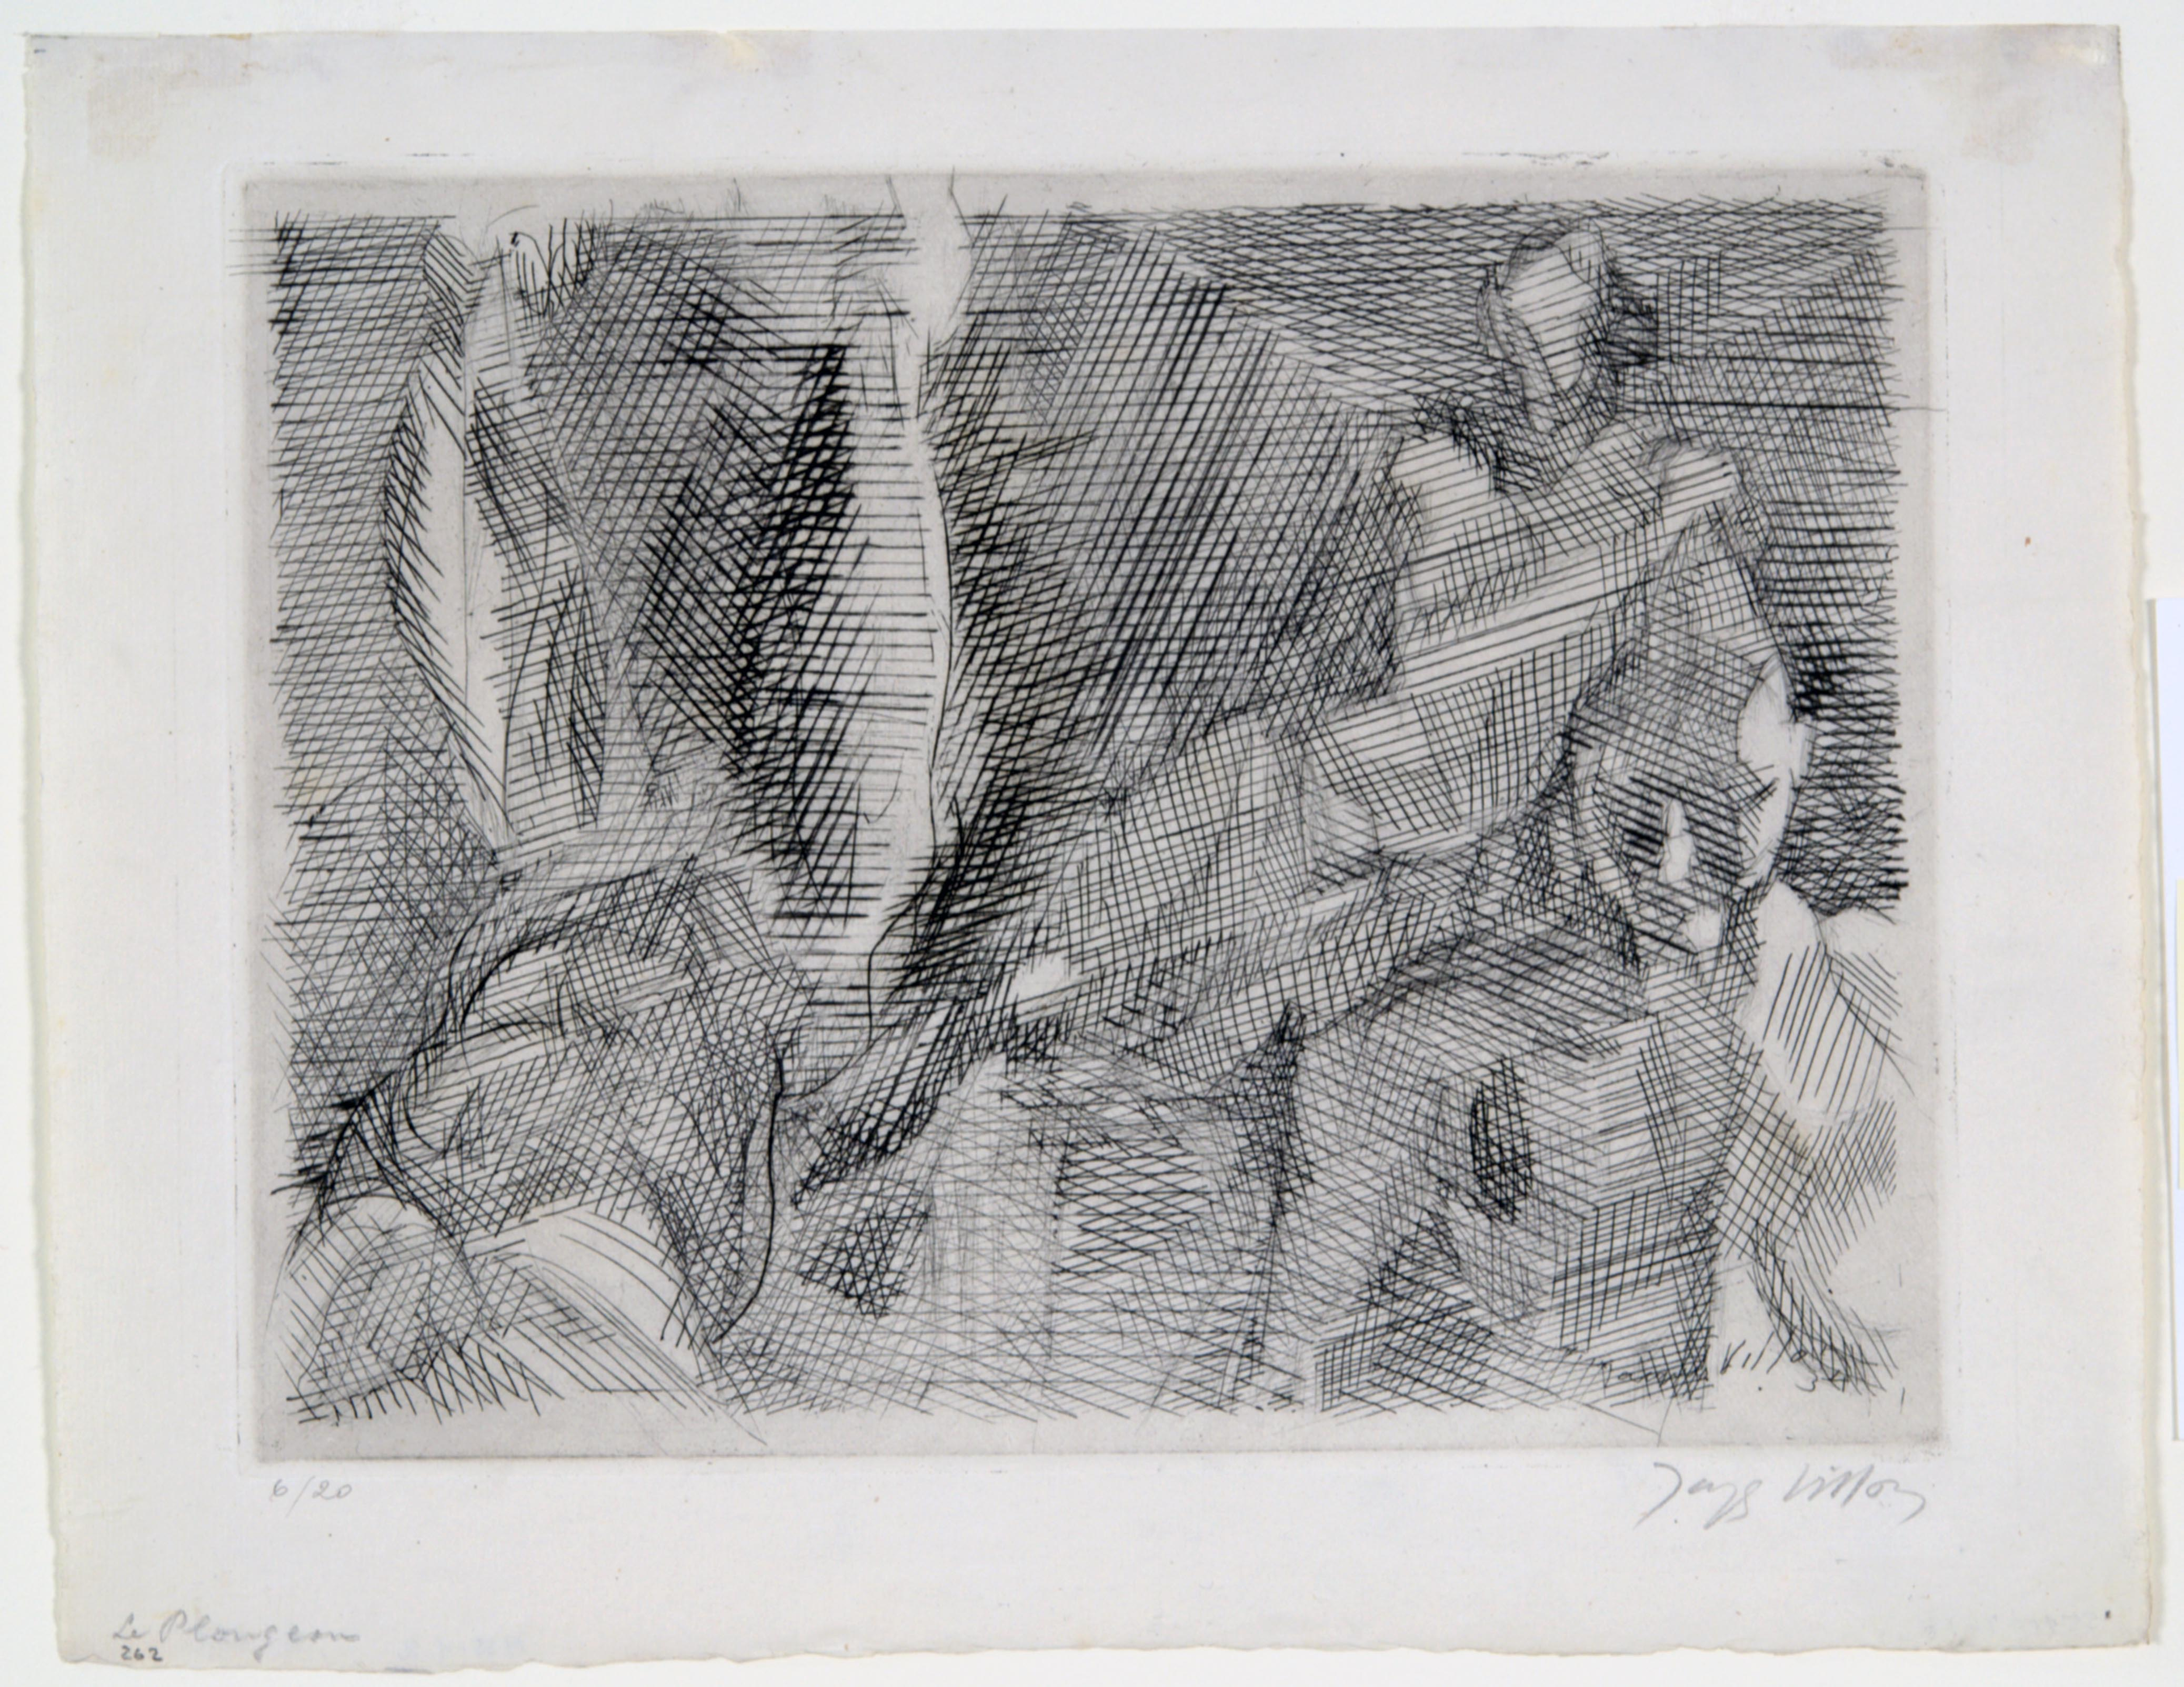 Jacques Villon, Dive, 1934